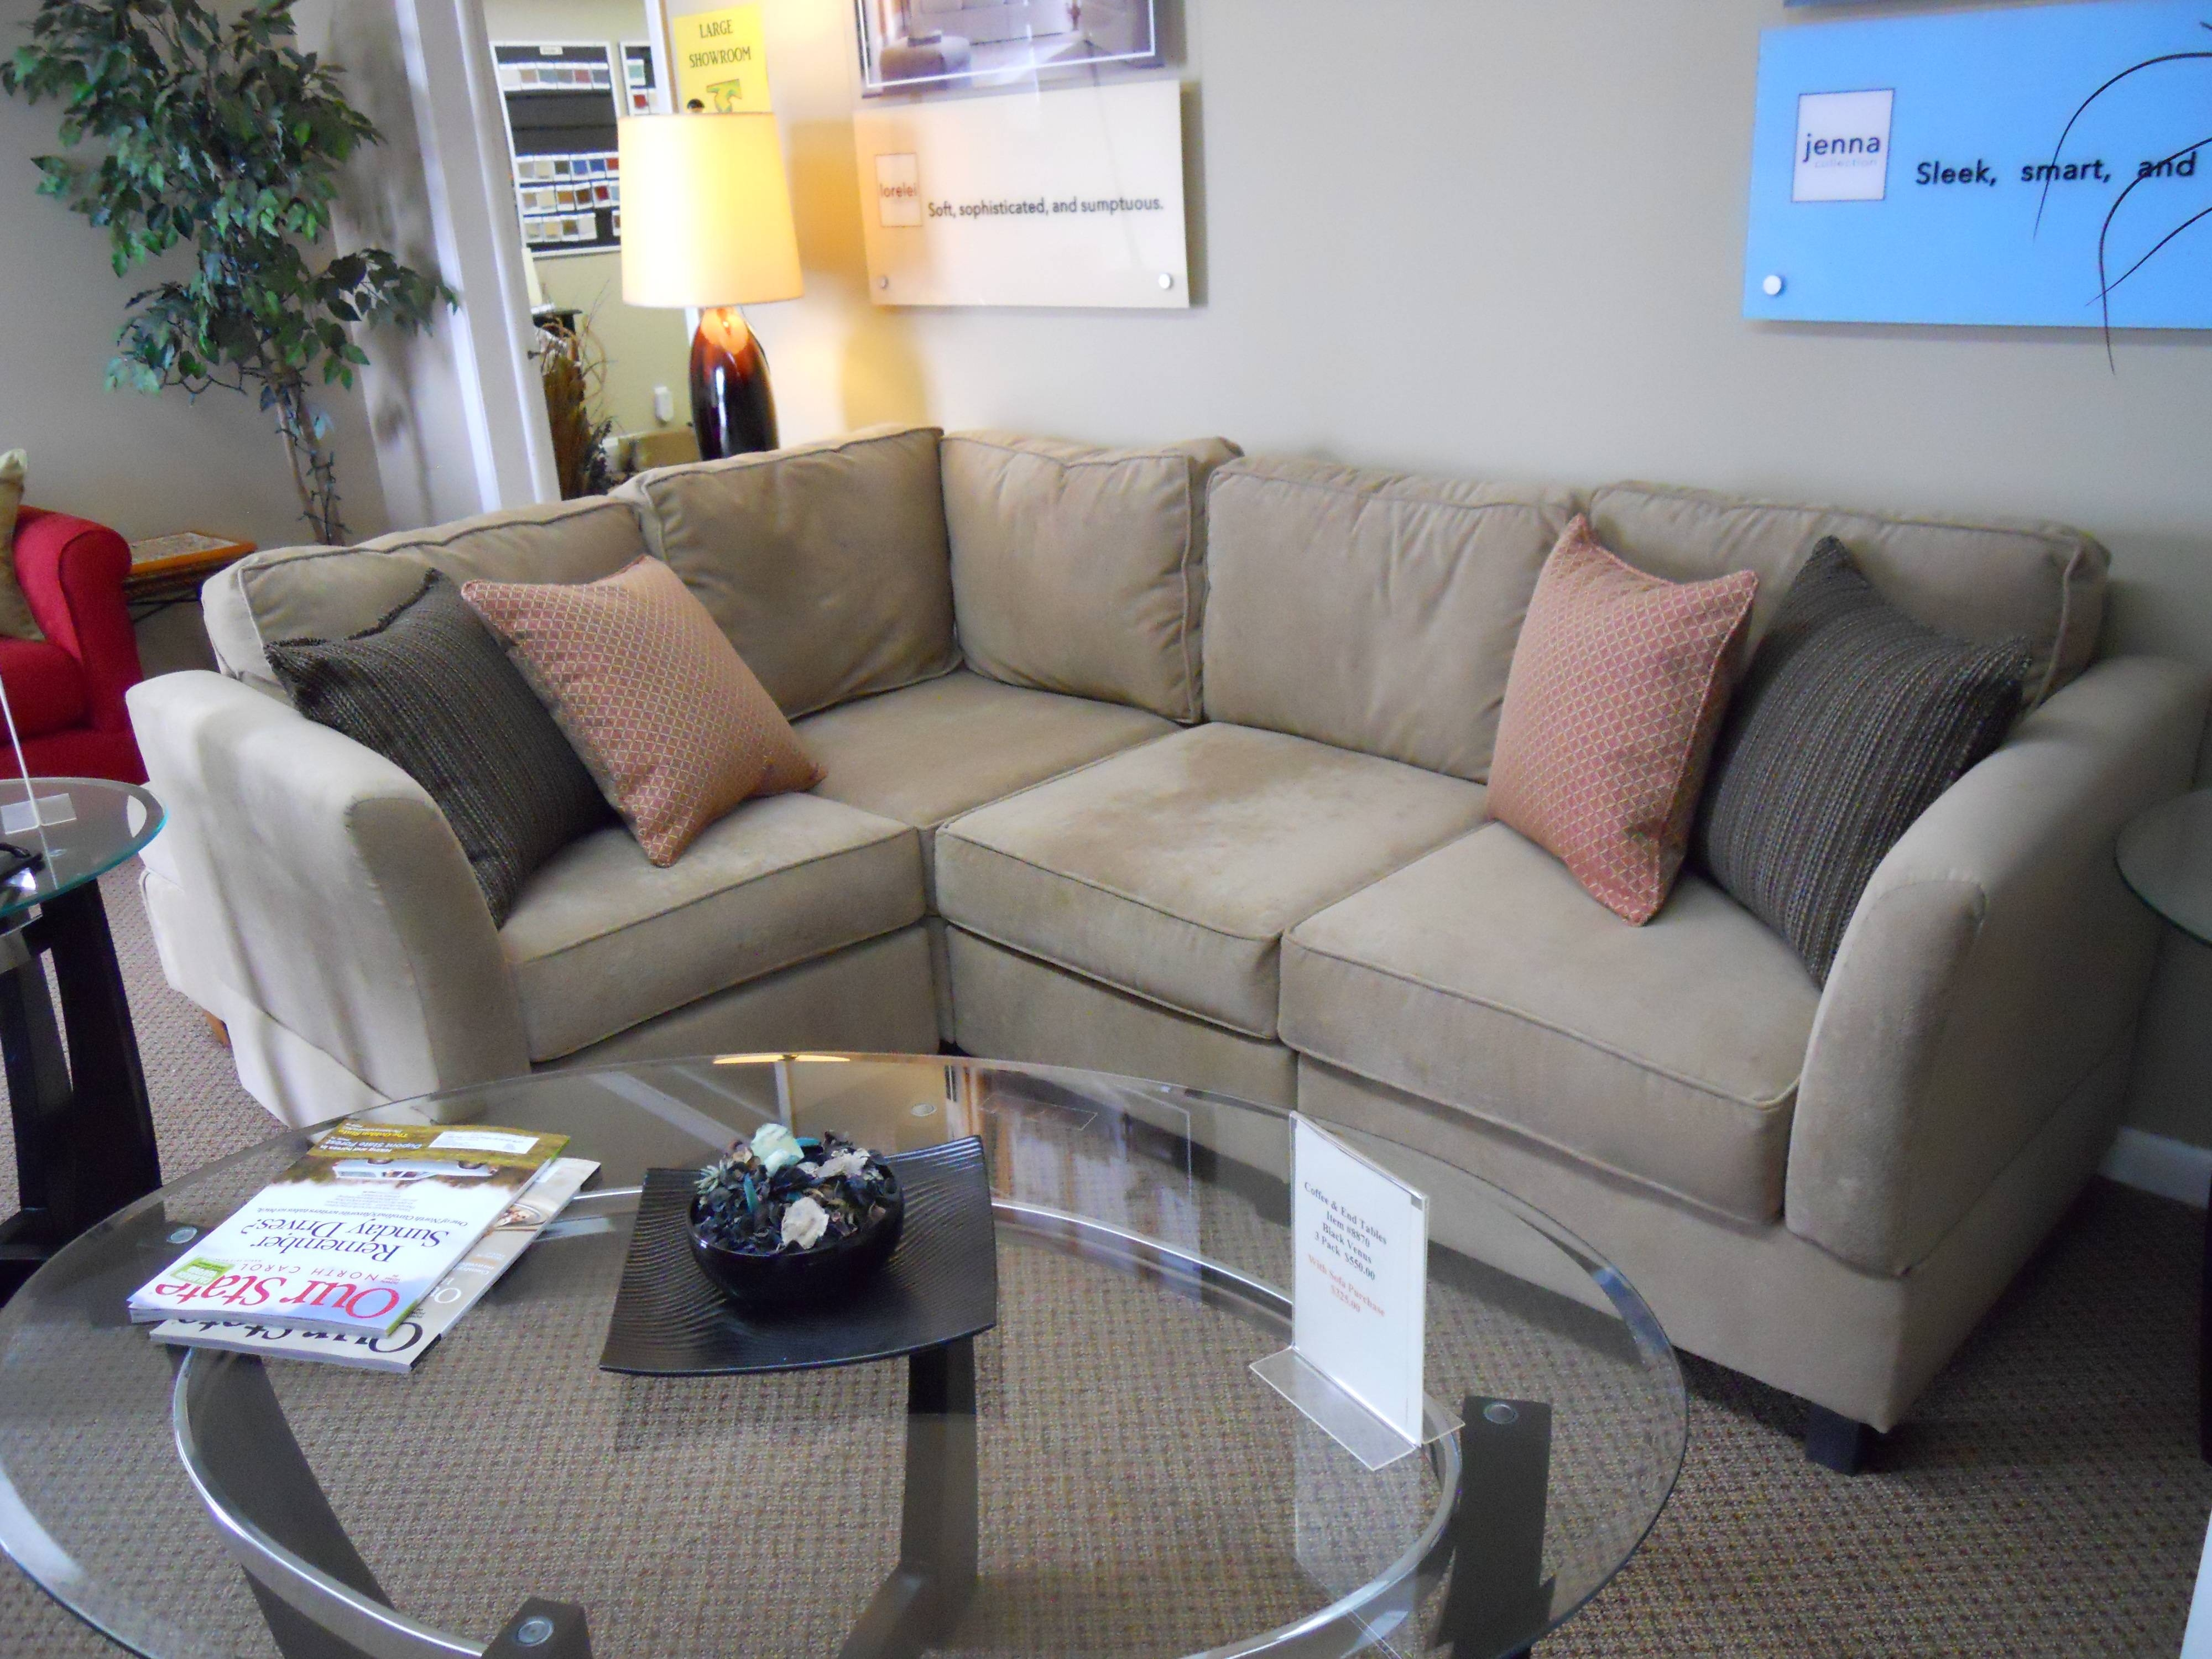 Great Lee Industries Sectional Sofa 39 With Additional Media Sofa inside Media Sofa Sectionals (Image 8 of 25)